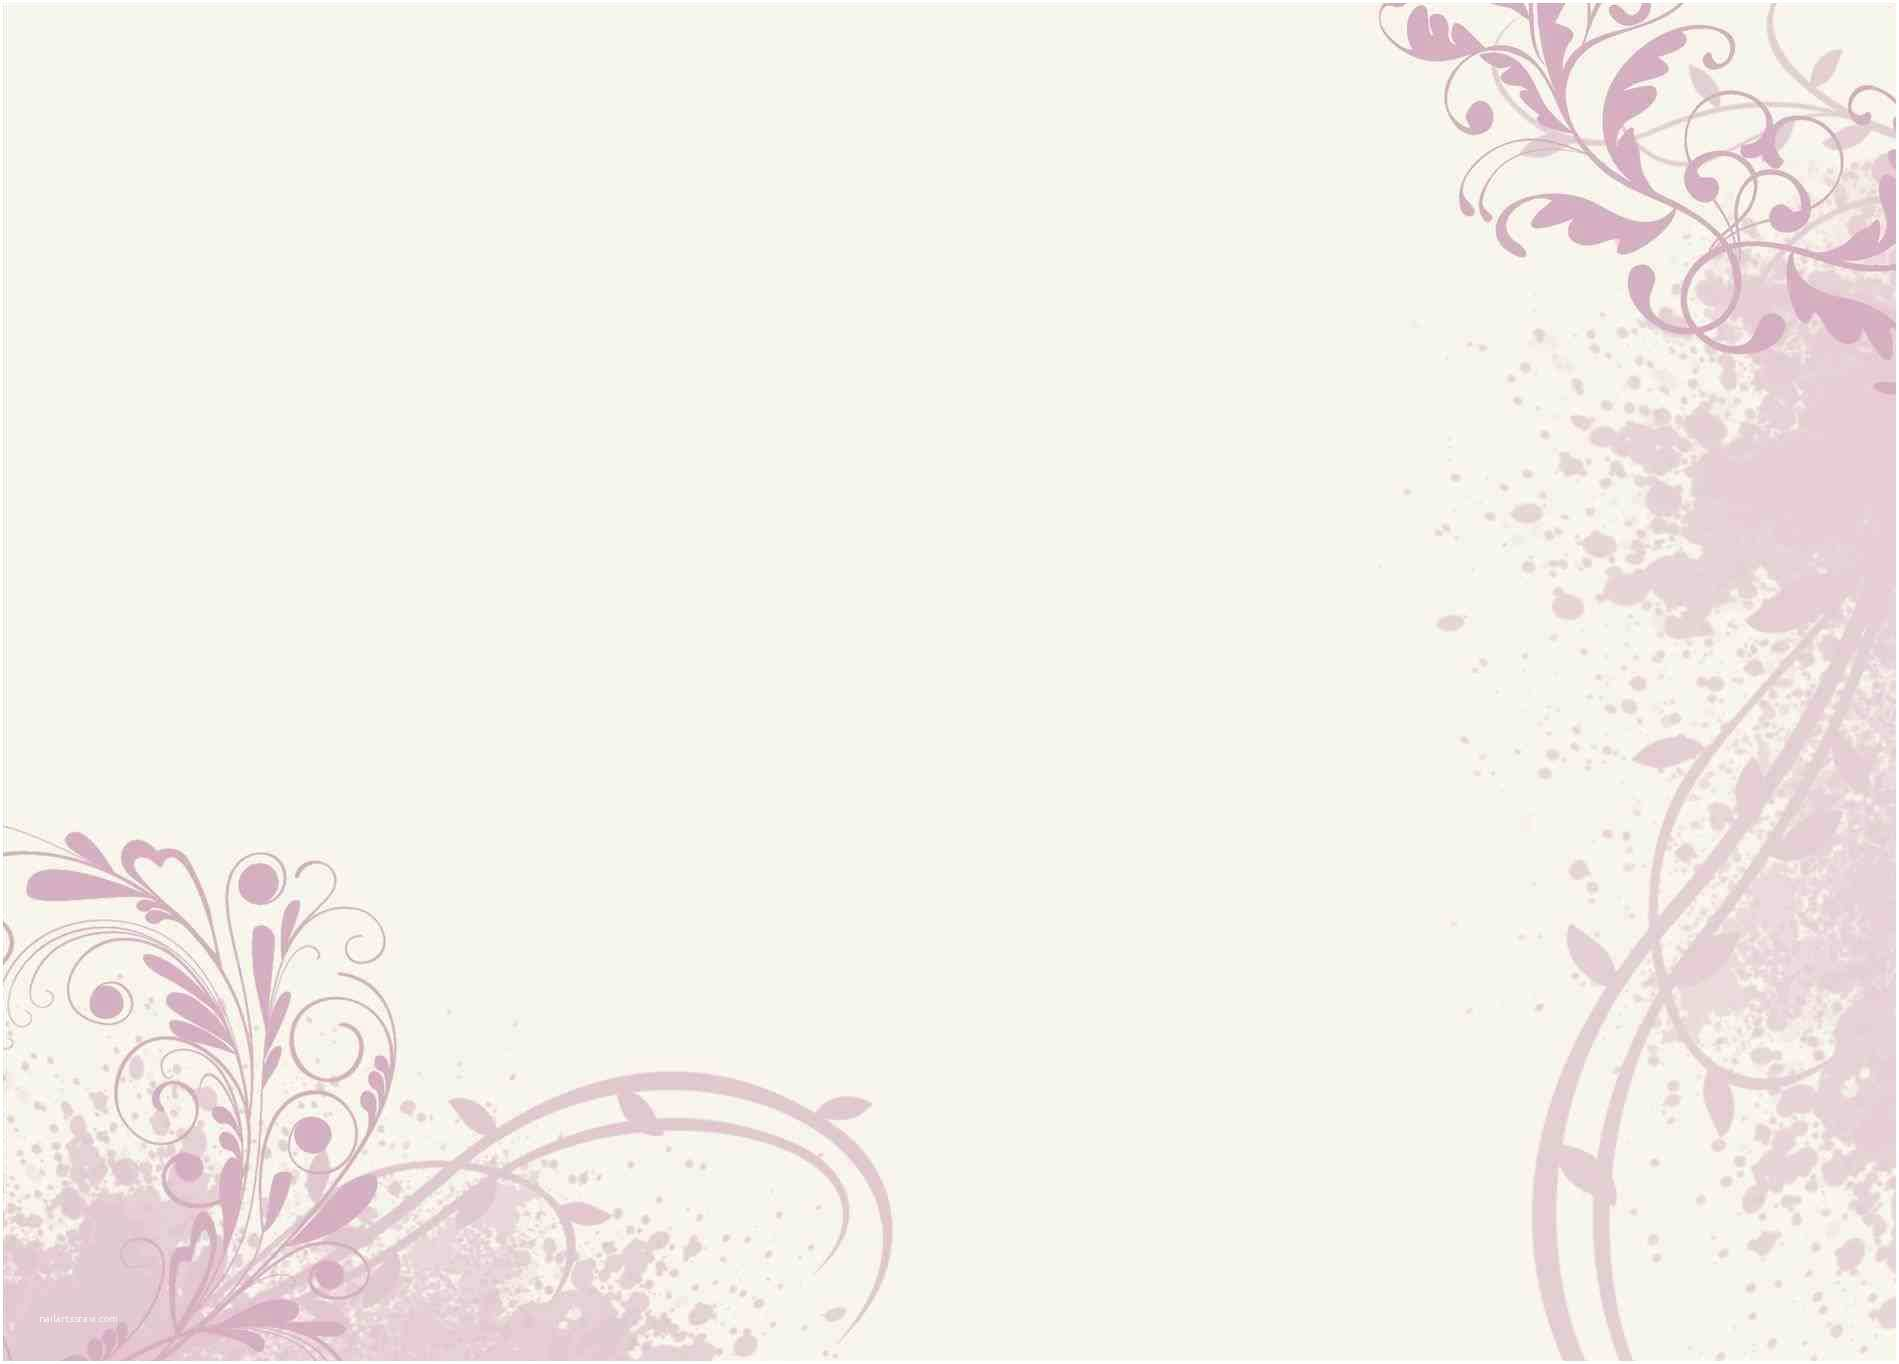 Background Images for Wedding Invitation Cards Psd Card Wedding Invitation Background Designs Free